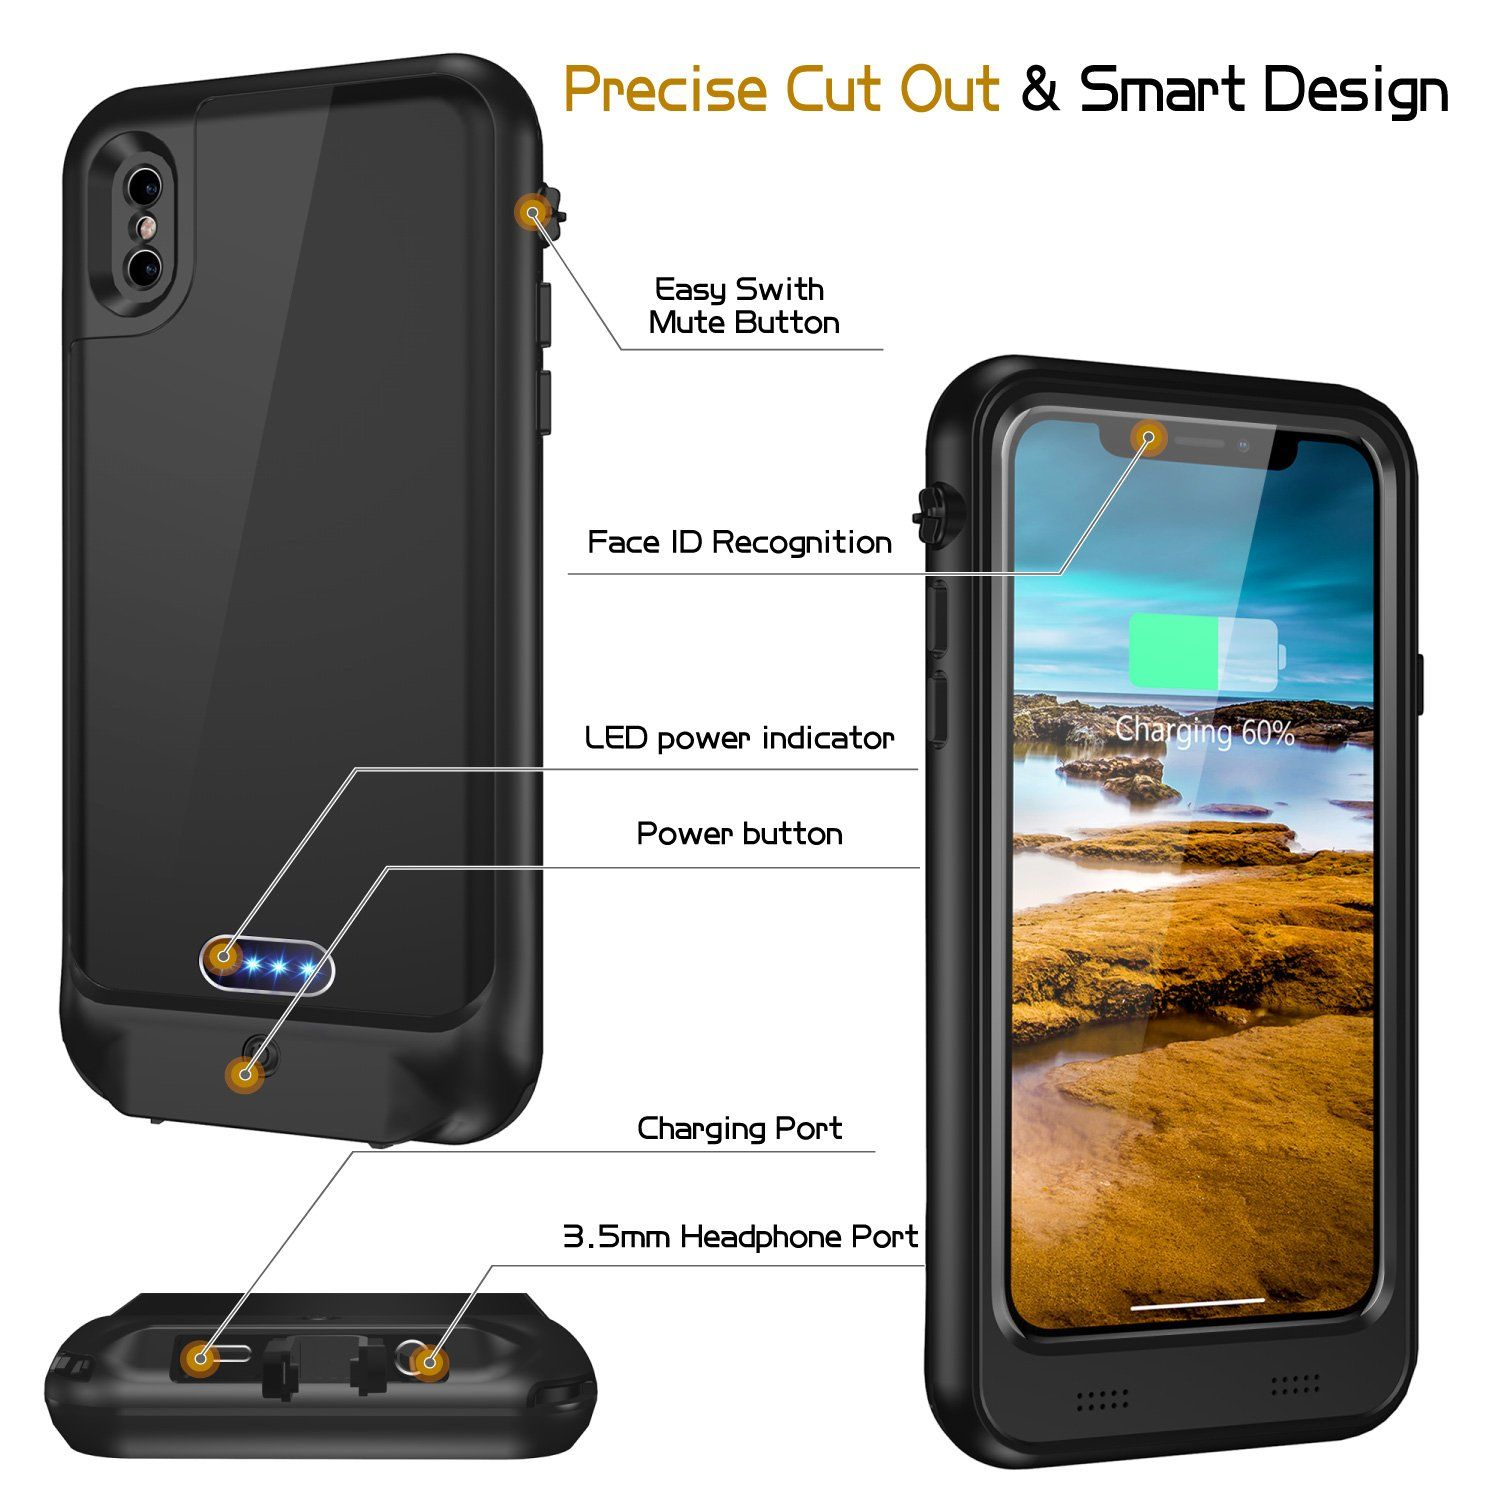 new products d17f3 3ac25 iPhone X Water Resistant Battery Case With Qi Wireless Charging ...